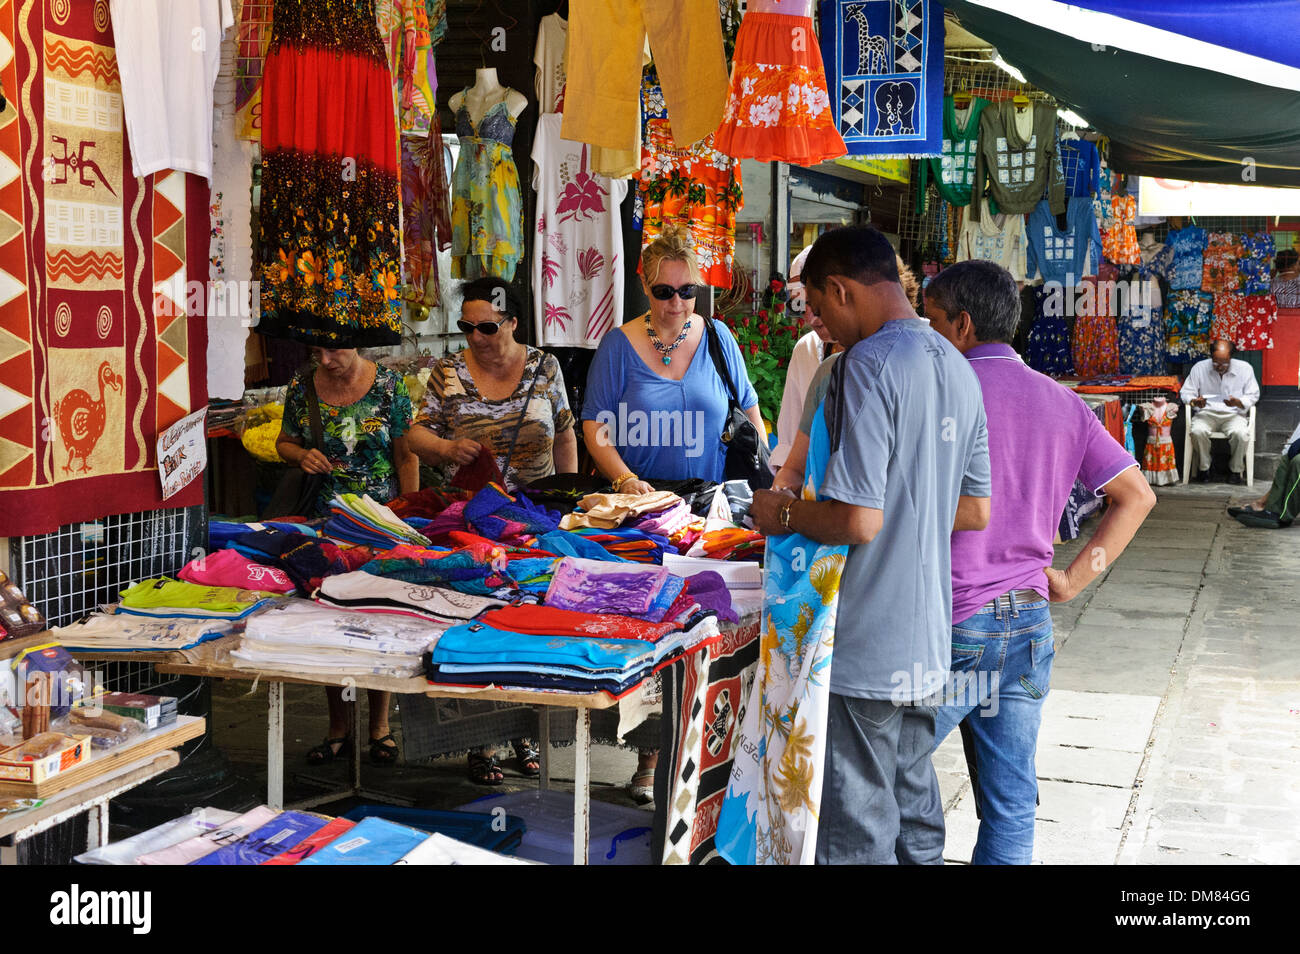 Tourists examining local crafts on sale in port louis market stock photo royalty free image - Mauritius market port louis ...